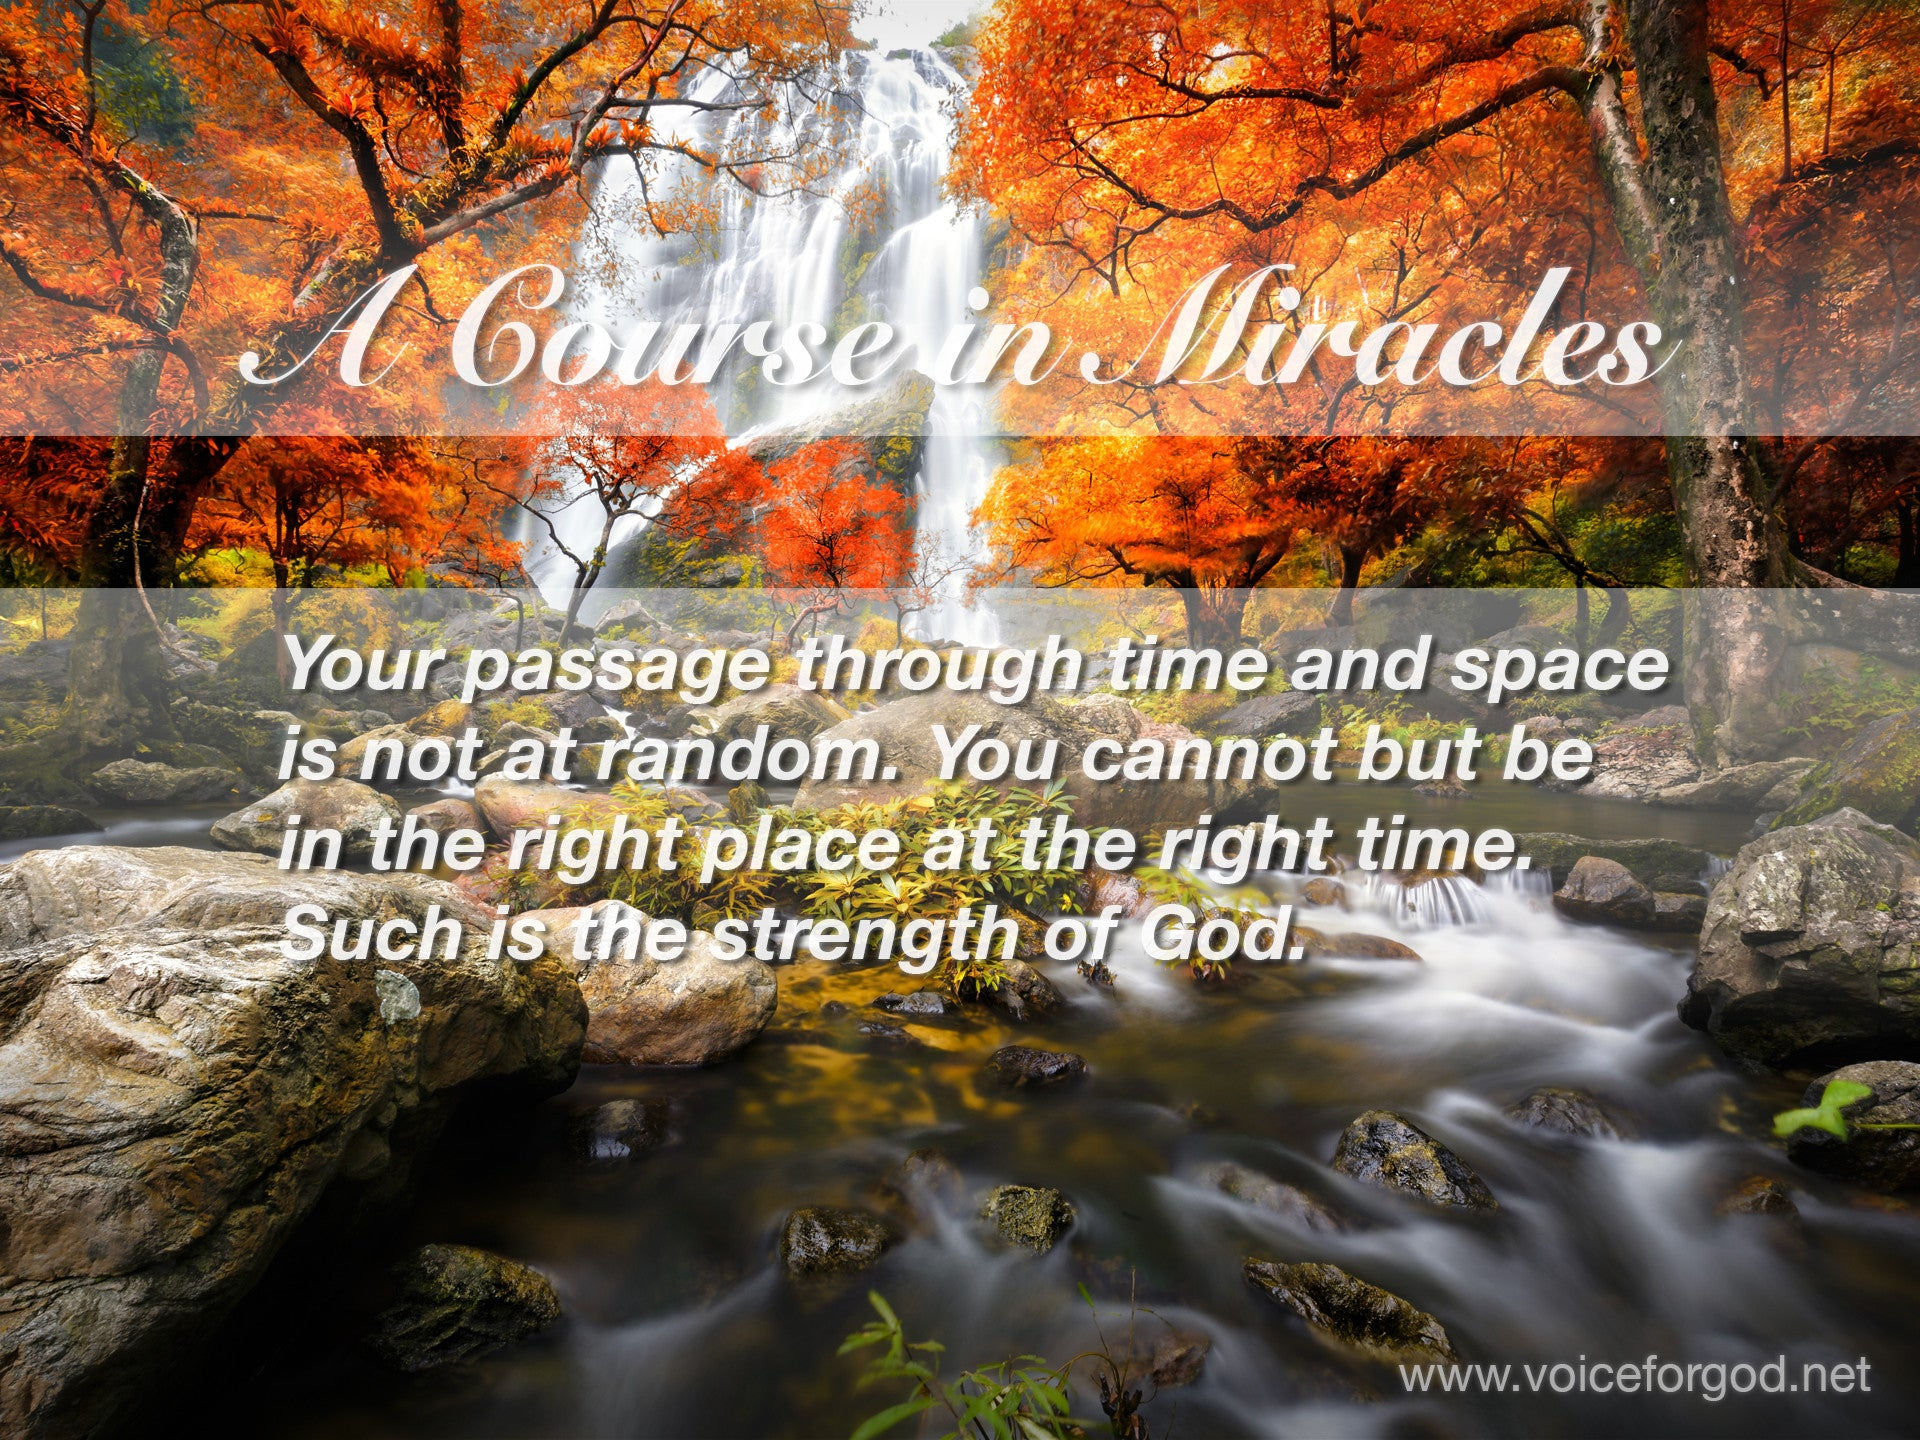 ACIM Quote 0824 A Course in Miracles Quotes